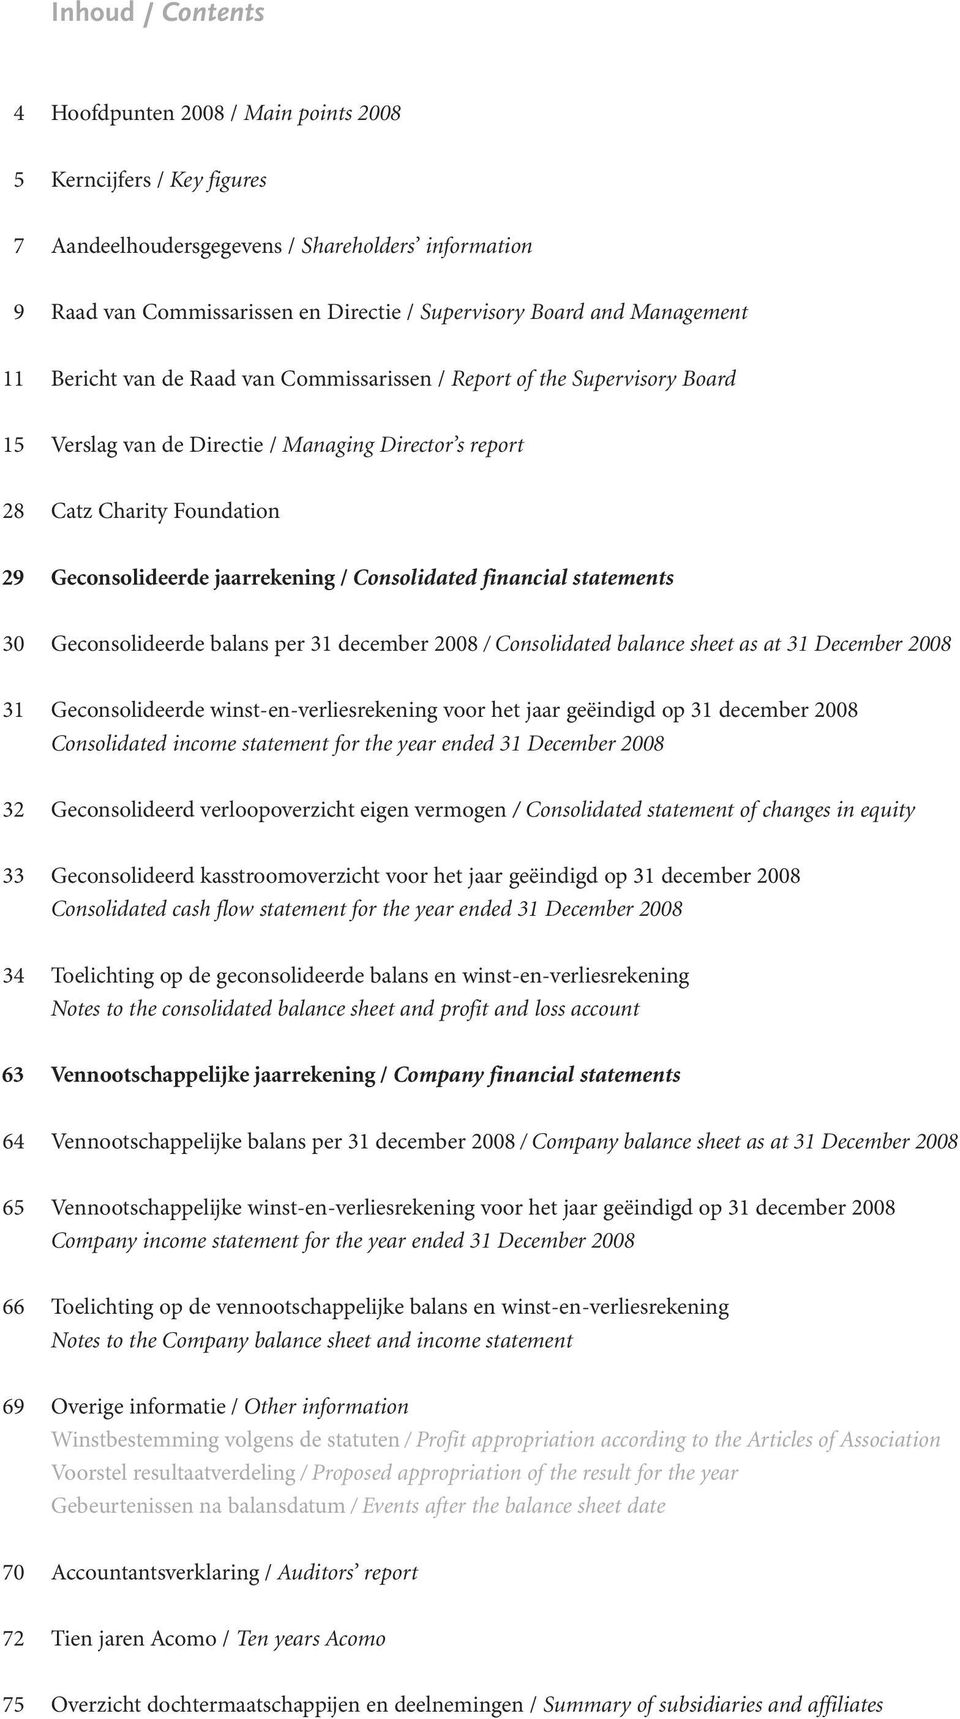 Charity Foundation Geconsolideerde jaarrekening / Consolidated financial statements Geconsolideerde balans per 31 december / Consolidated balance sheet as at 31 December Geconsolideerde